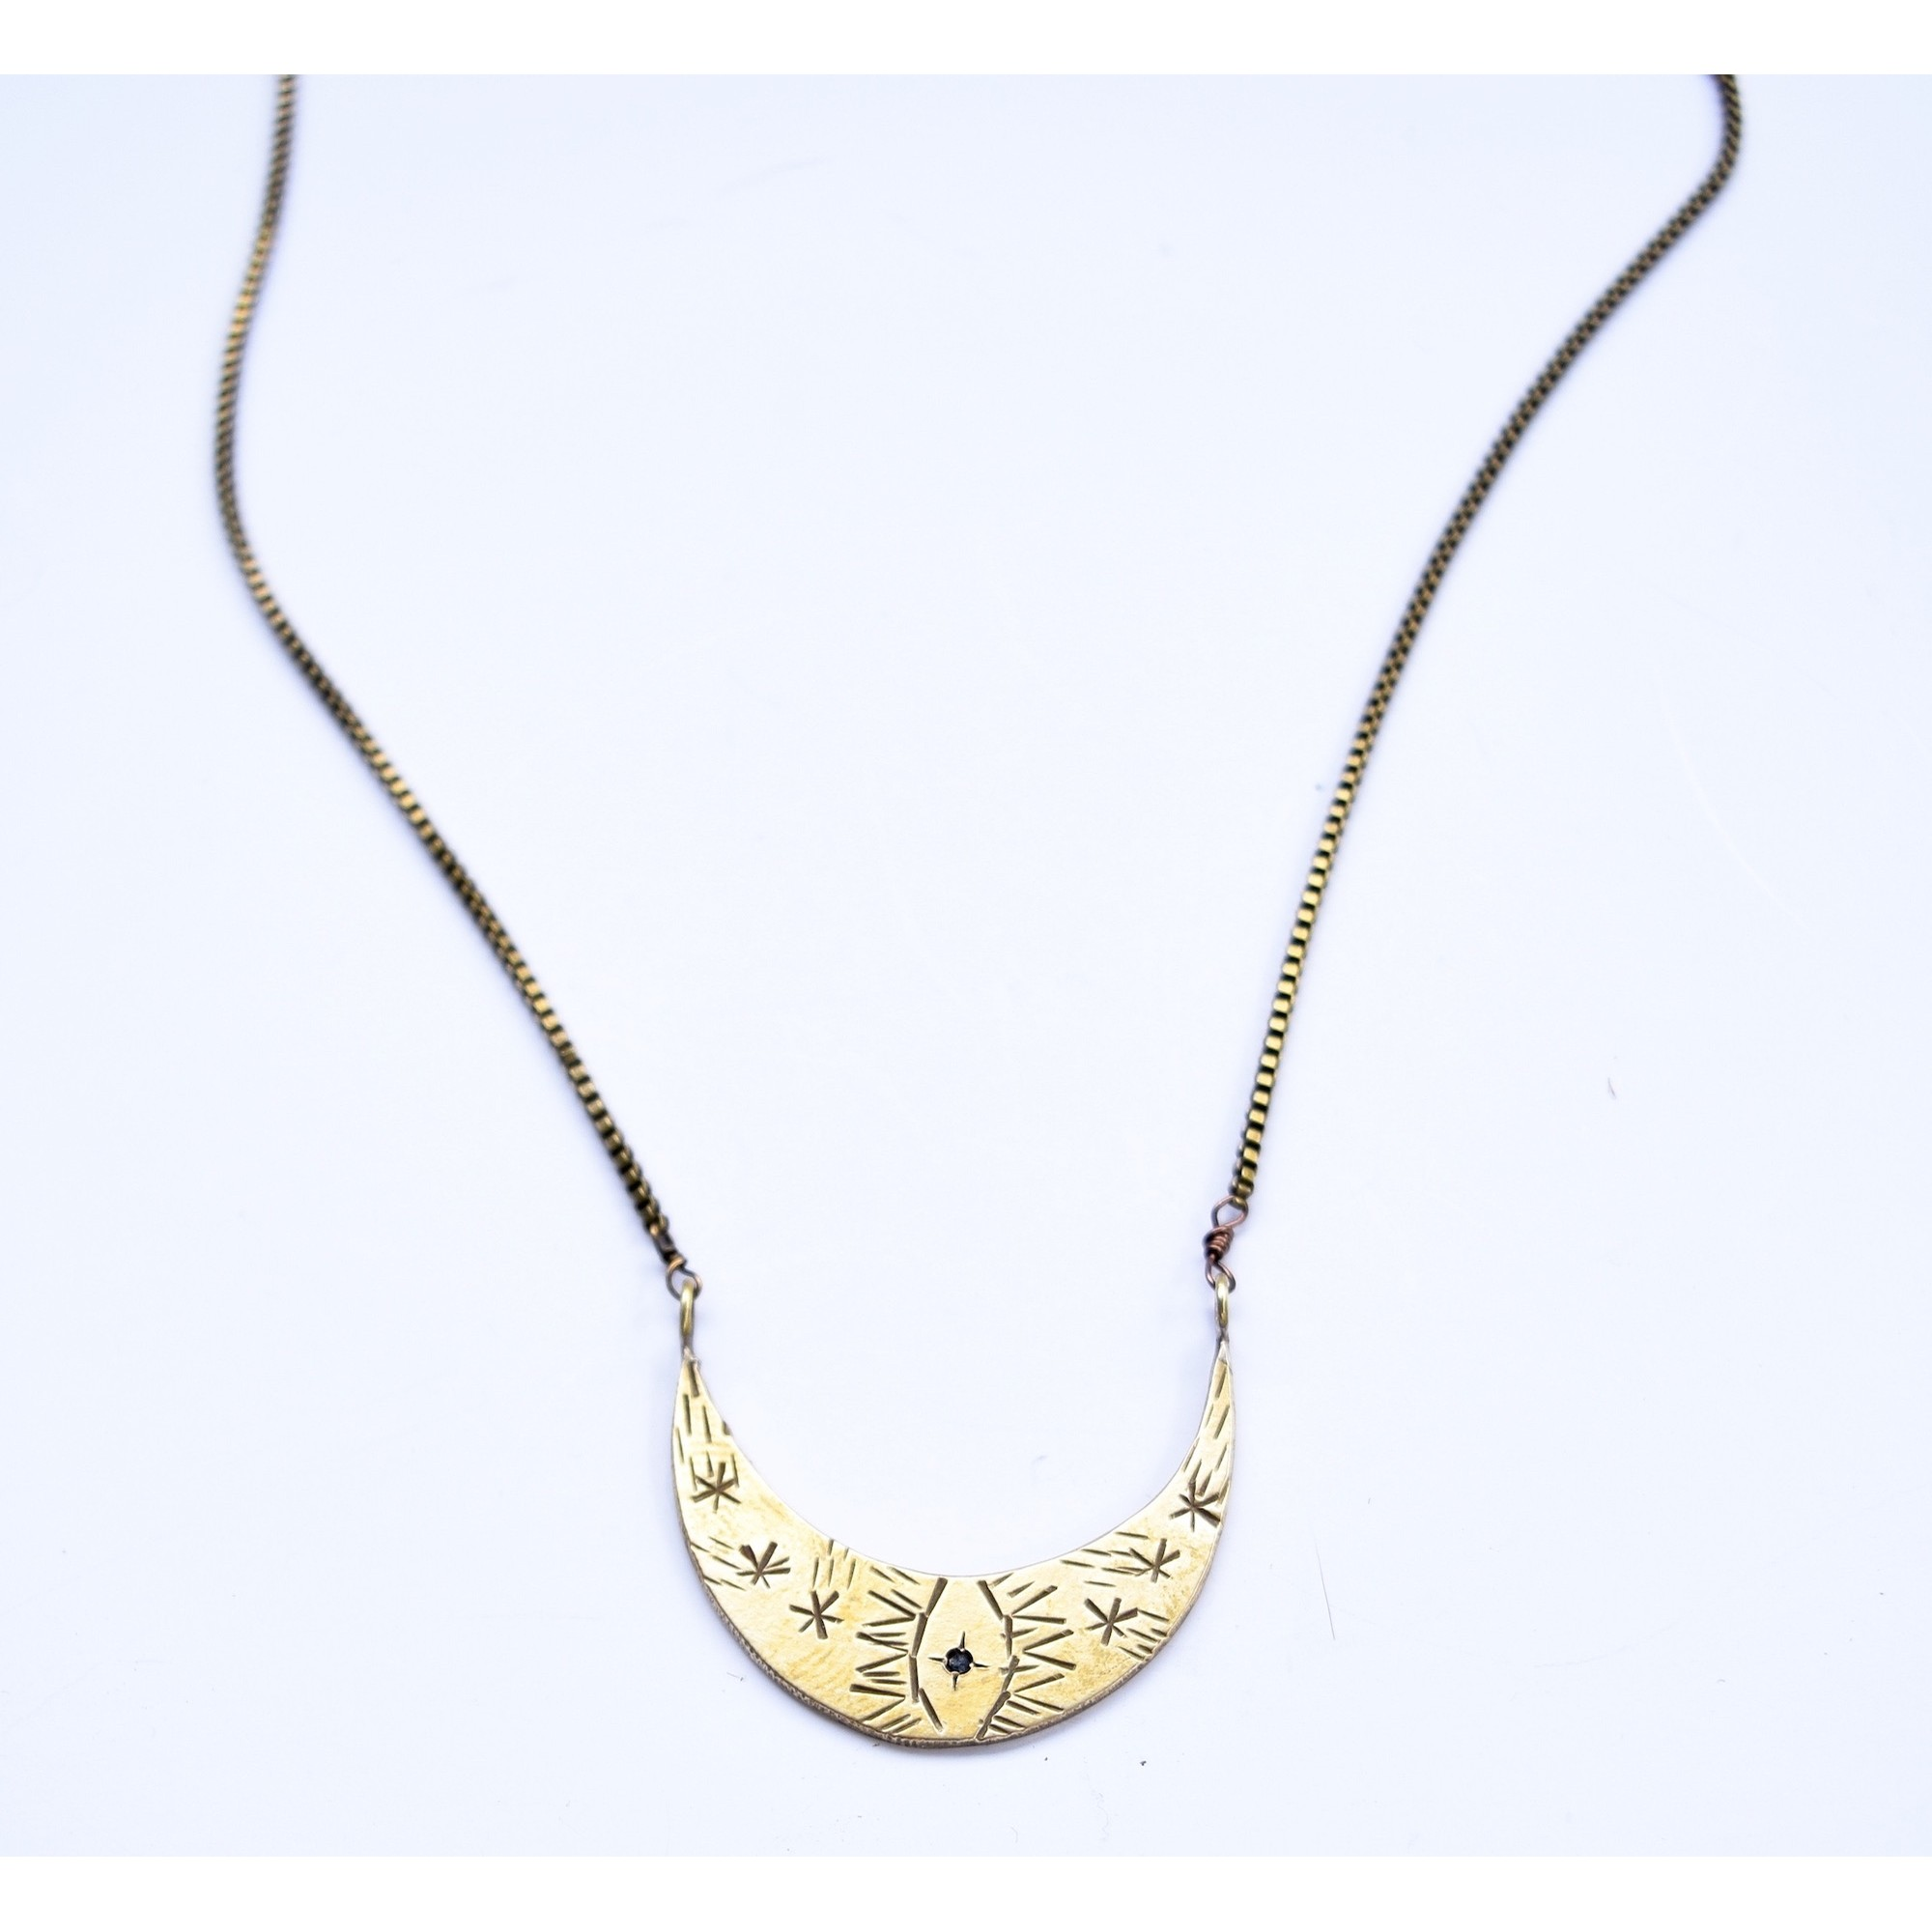 Gemstone Crescent Moon Necklace